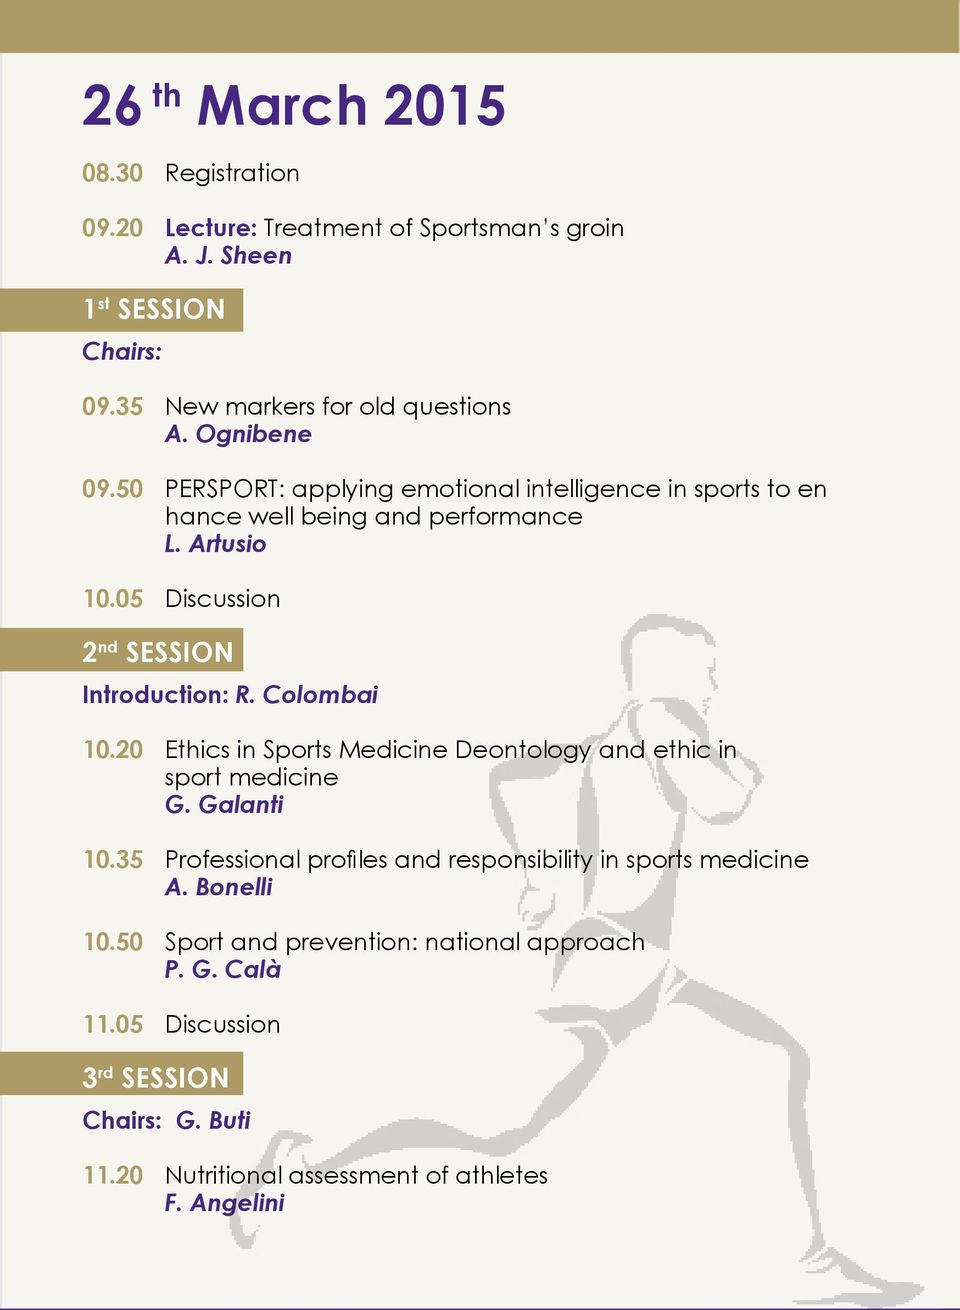 05 Discussion 2 nd SESSION Introduction: R. Colombai 10.20 Ethics in Sports Medicine Deontology and ethic in sport medicine G. Galanti 10.